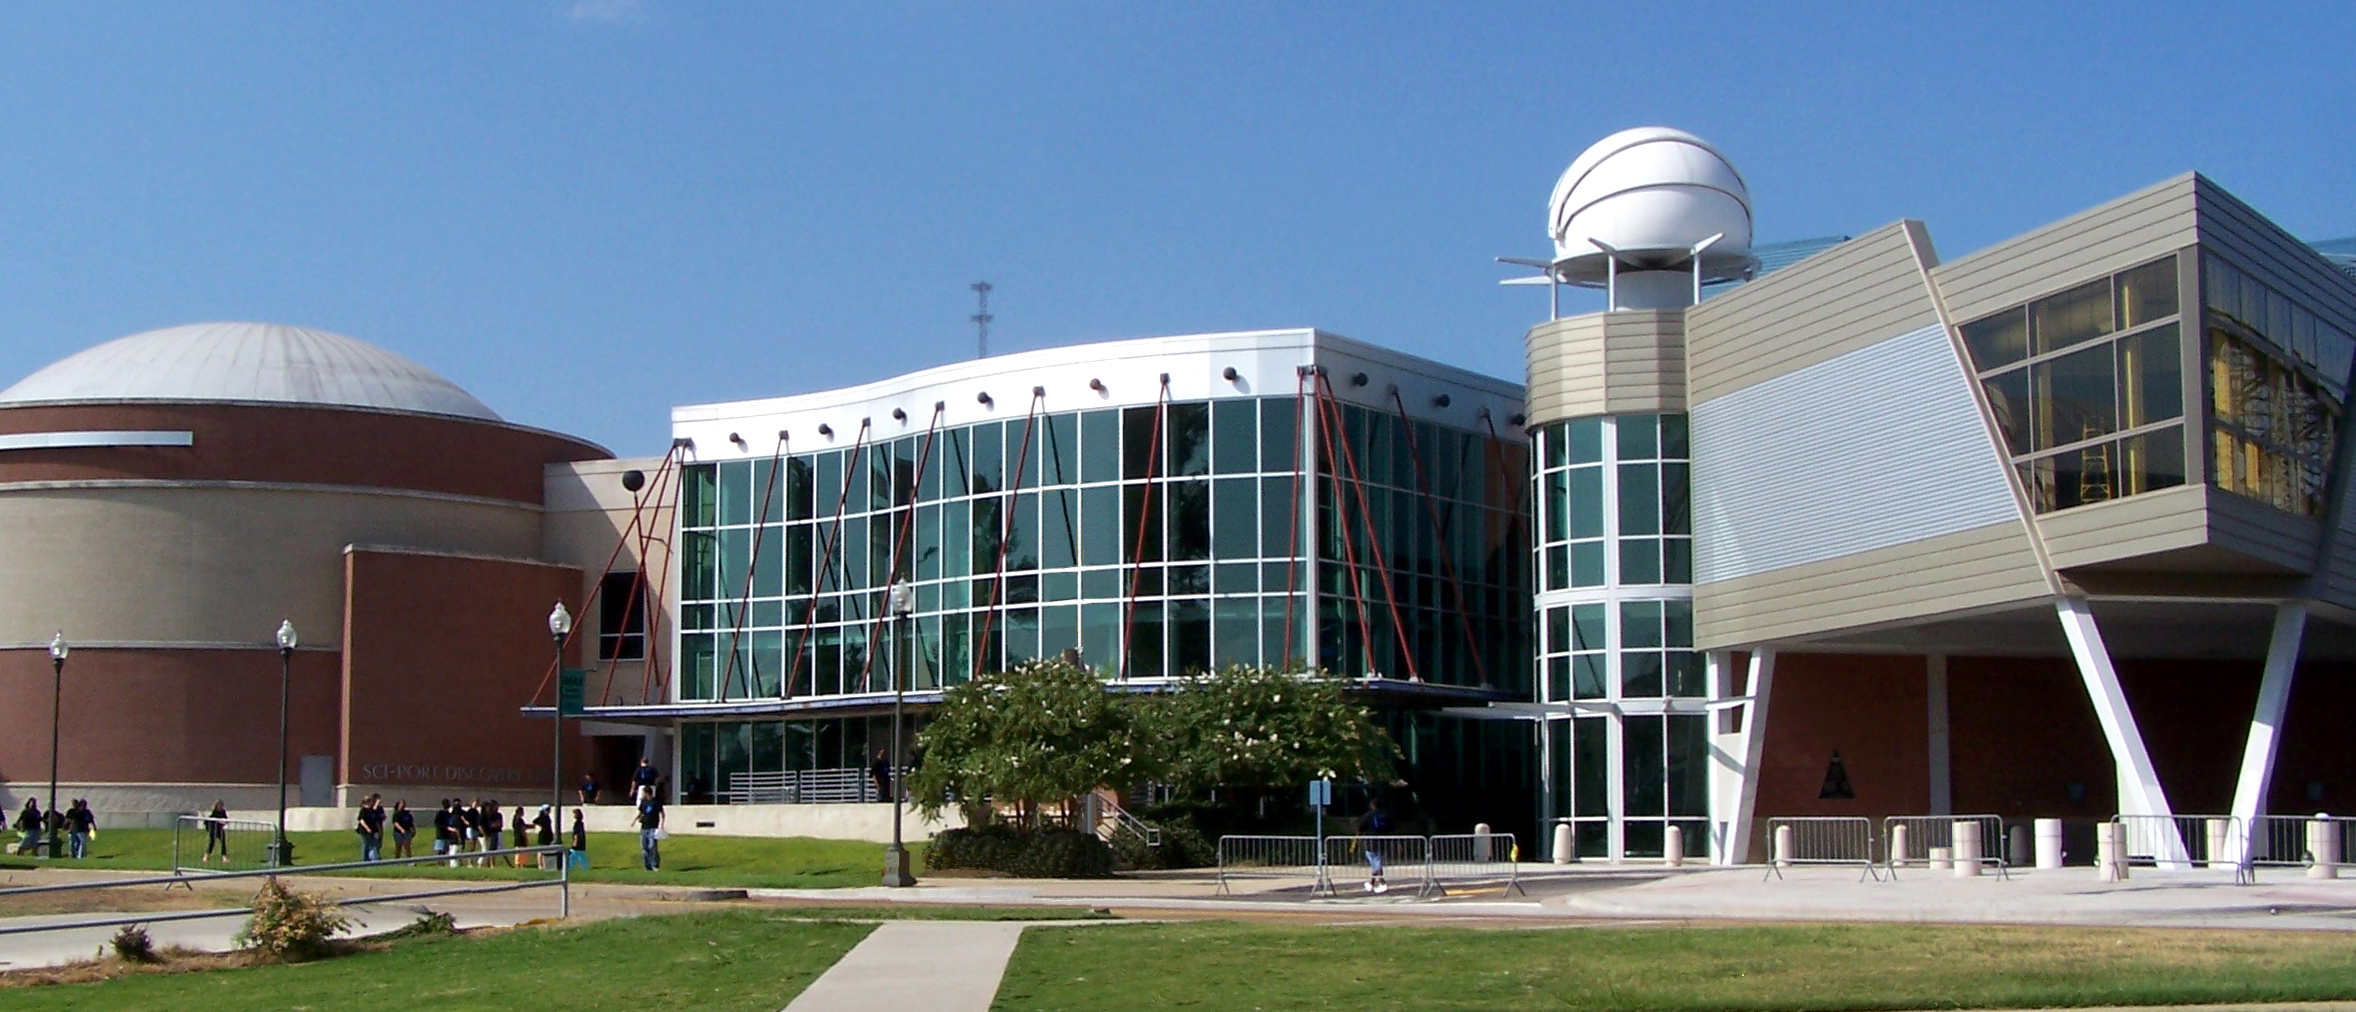 Exterior view of Sci-Port: Louisiana's Science Center